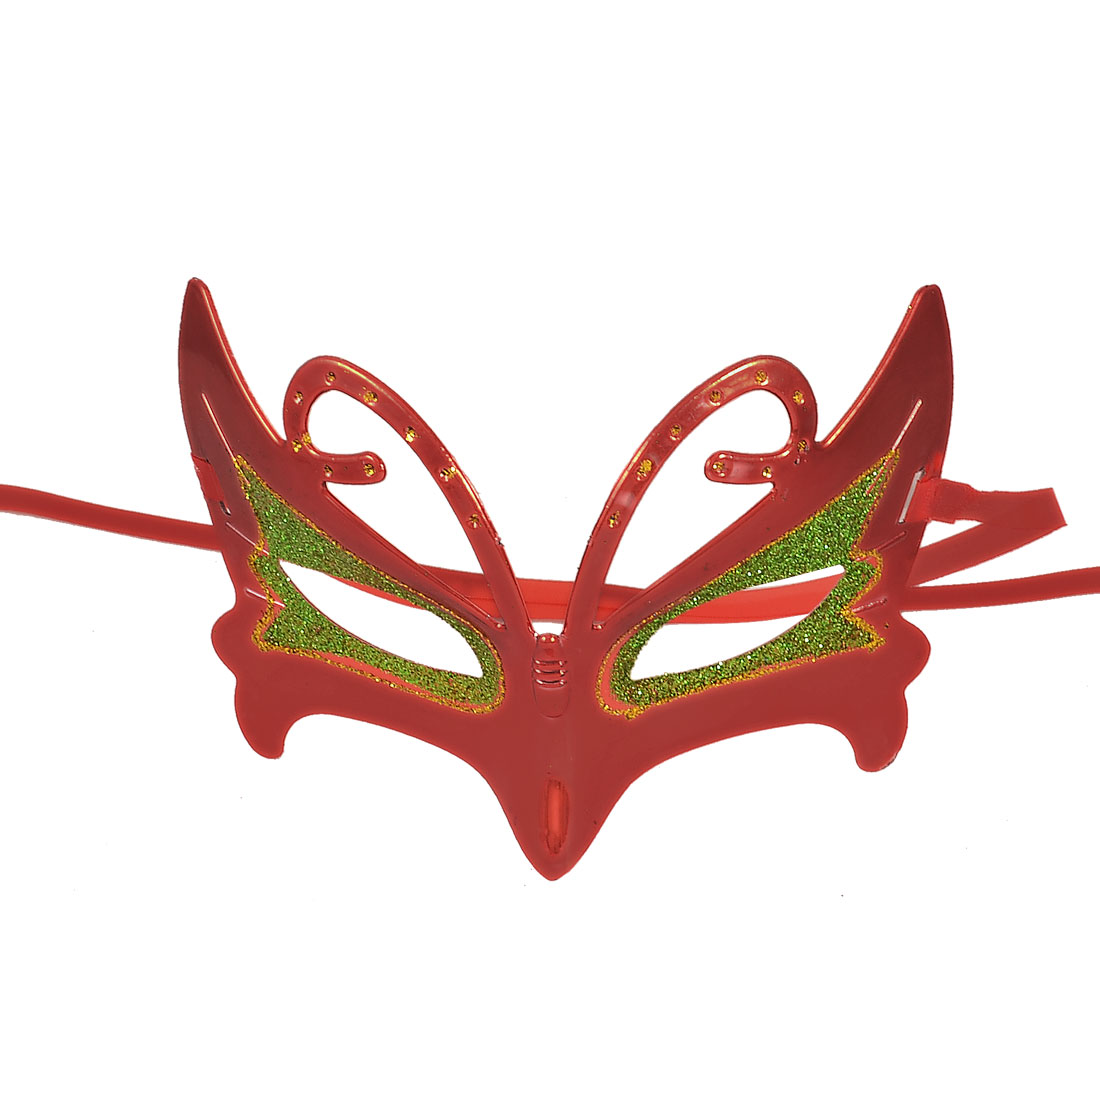 Green Gold Tone Glitter Powder Decor Self Tie Ribbon Carnival Party Mask Red